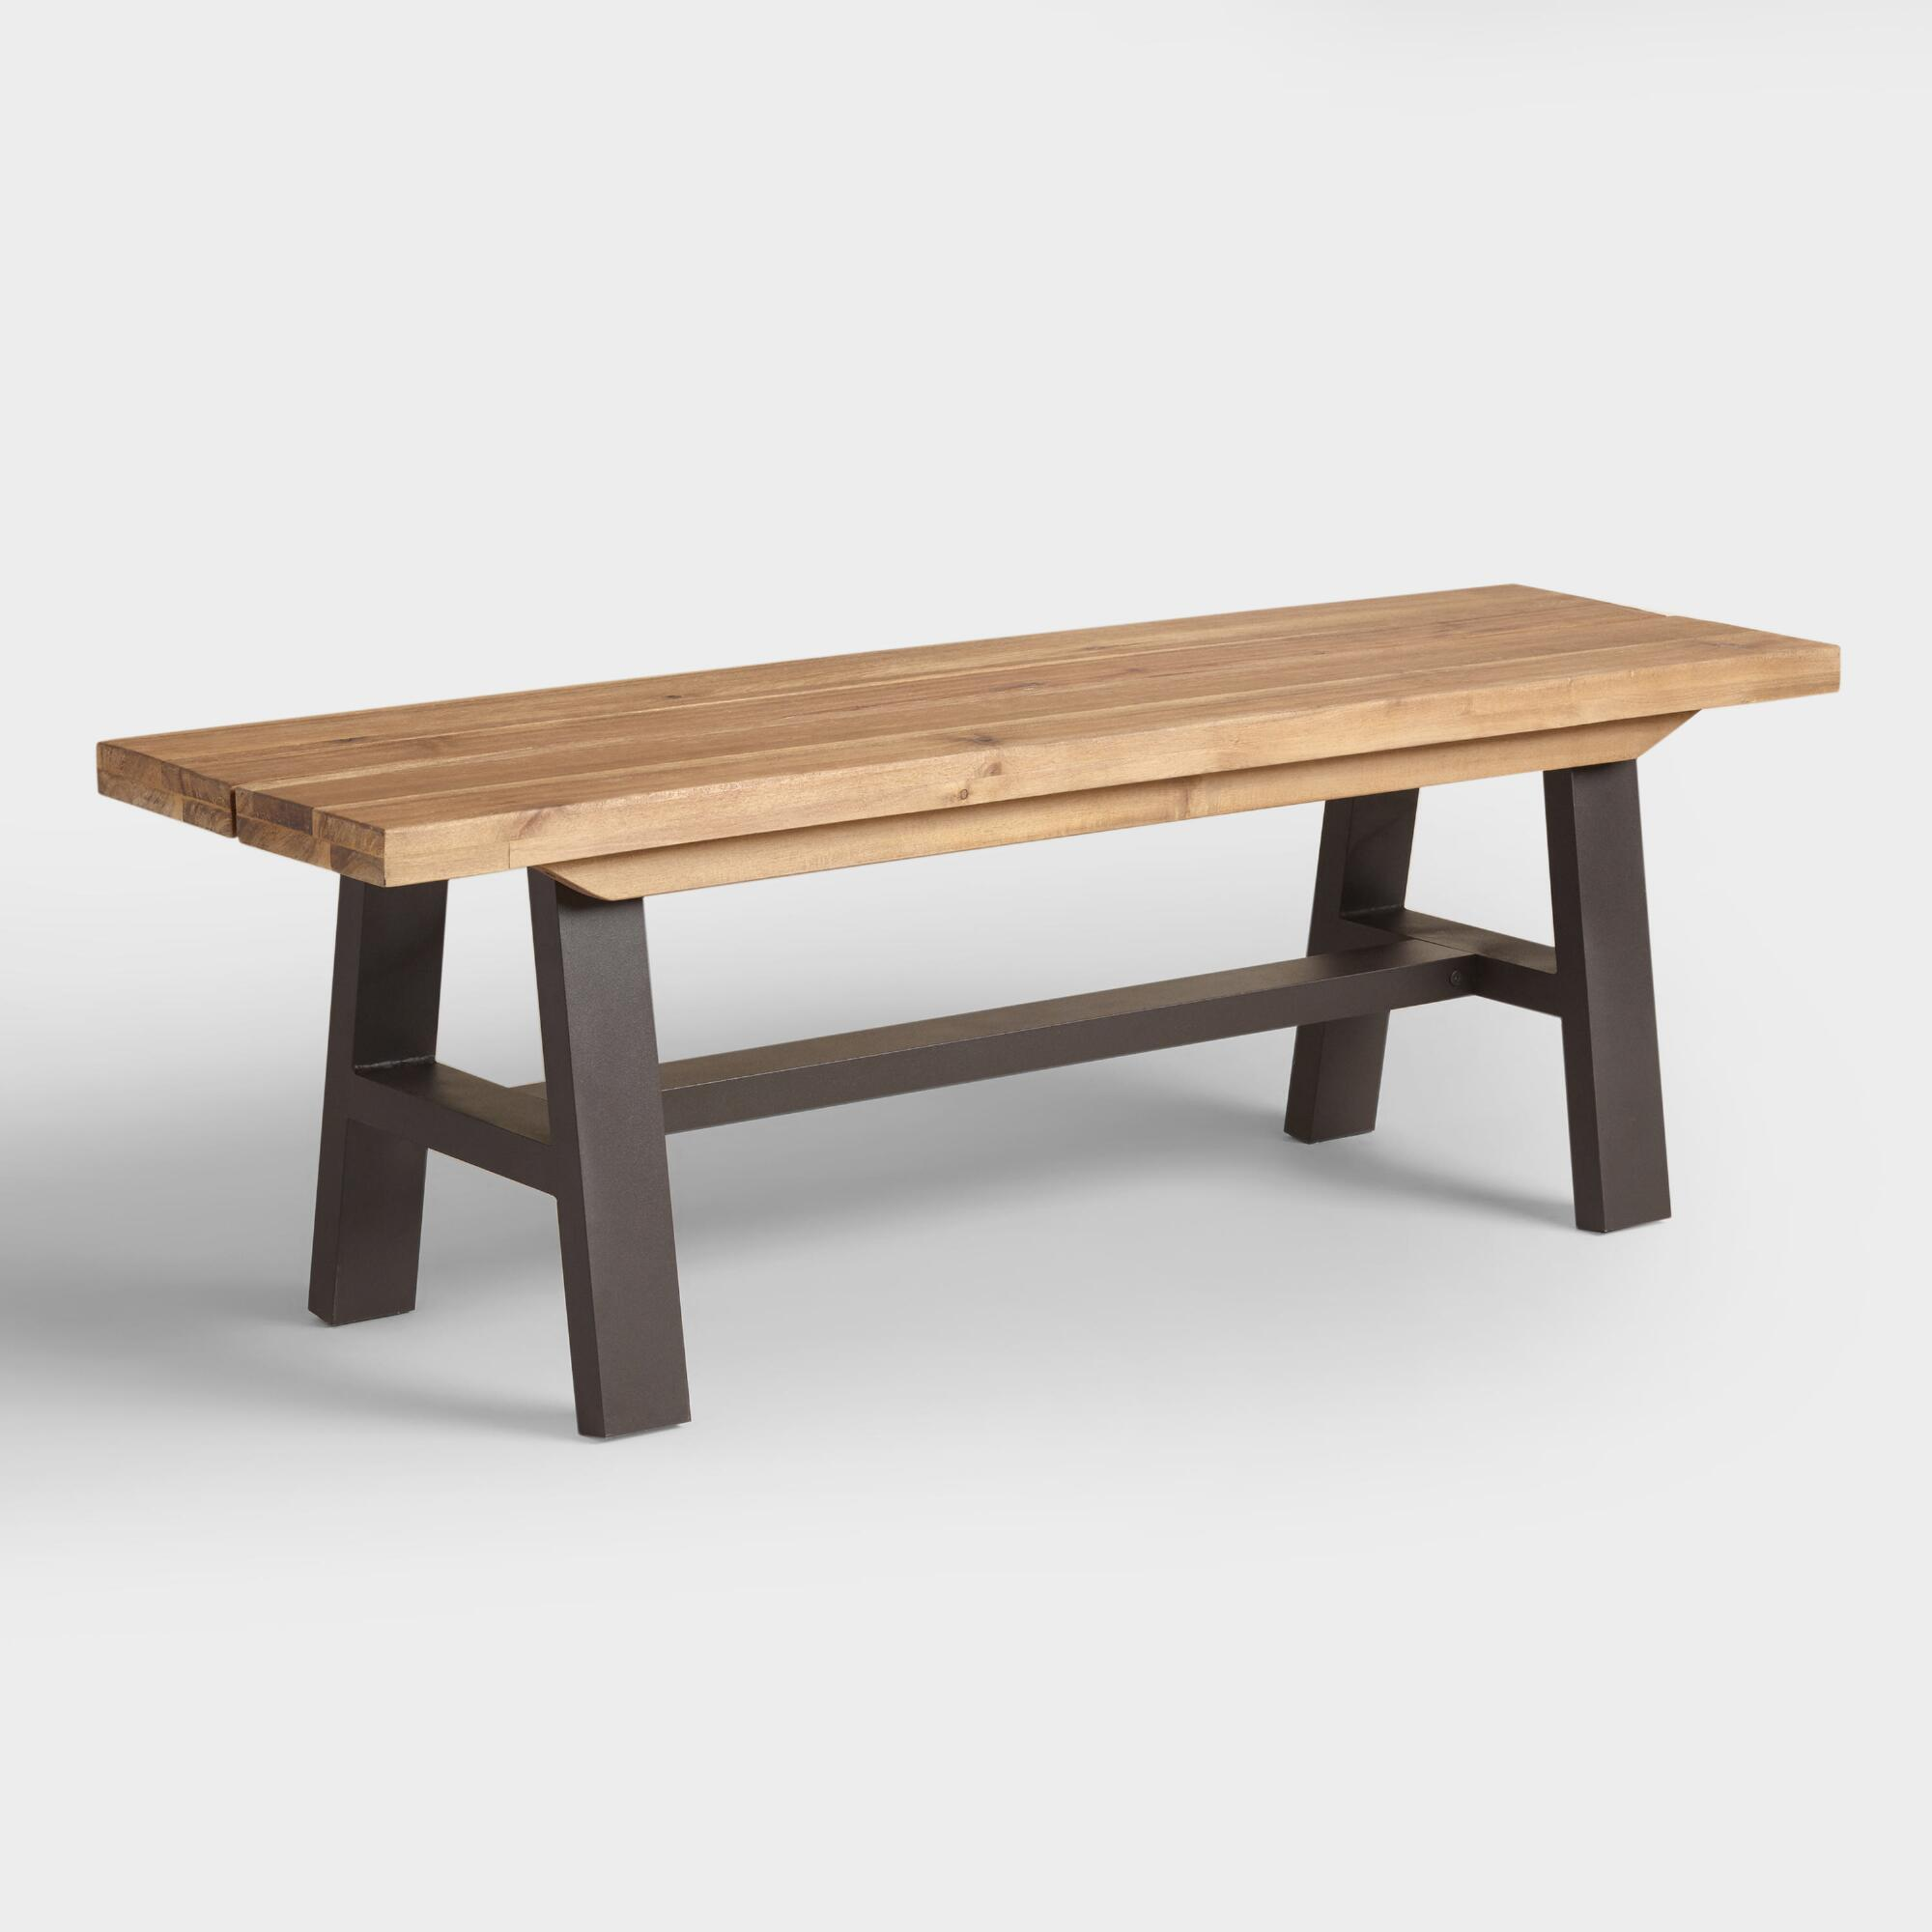 Wood and metal coronado a frame dining bench world market for Metal benches for outdoors